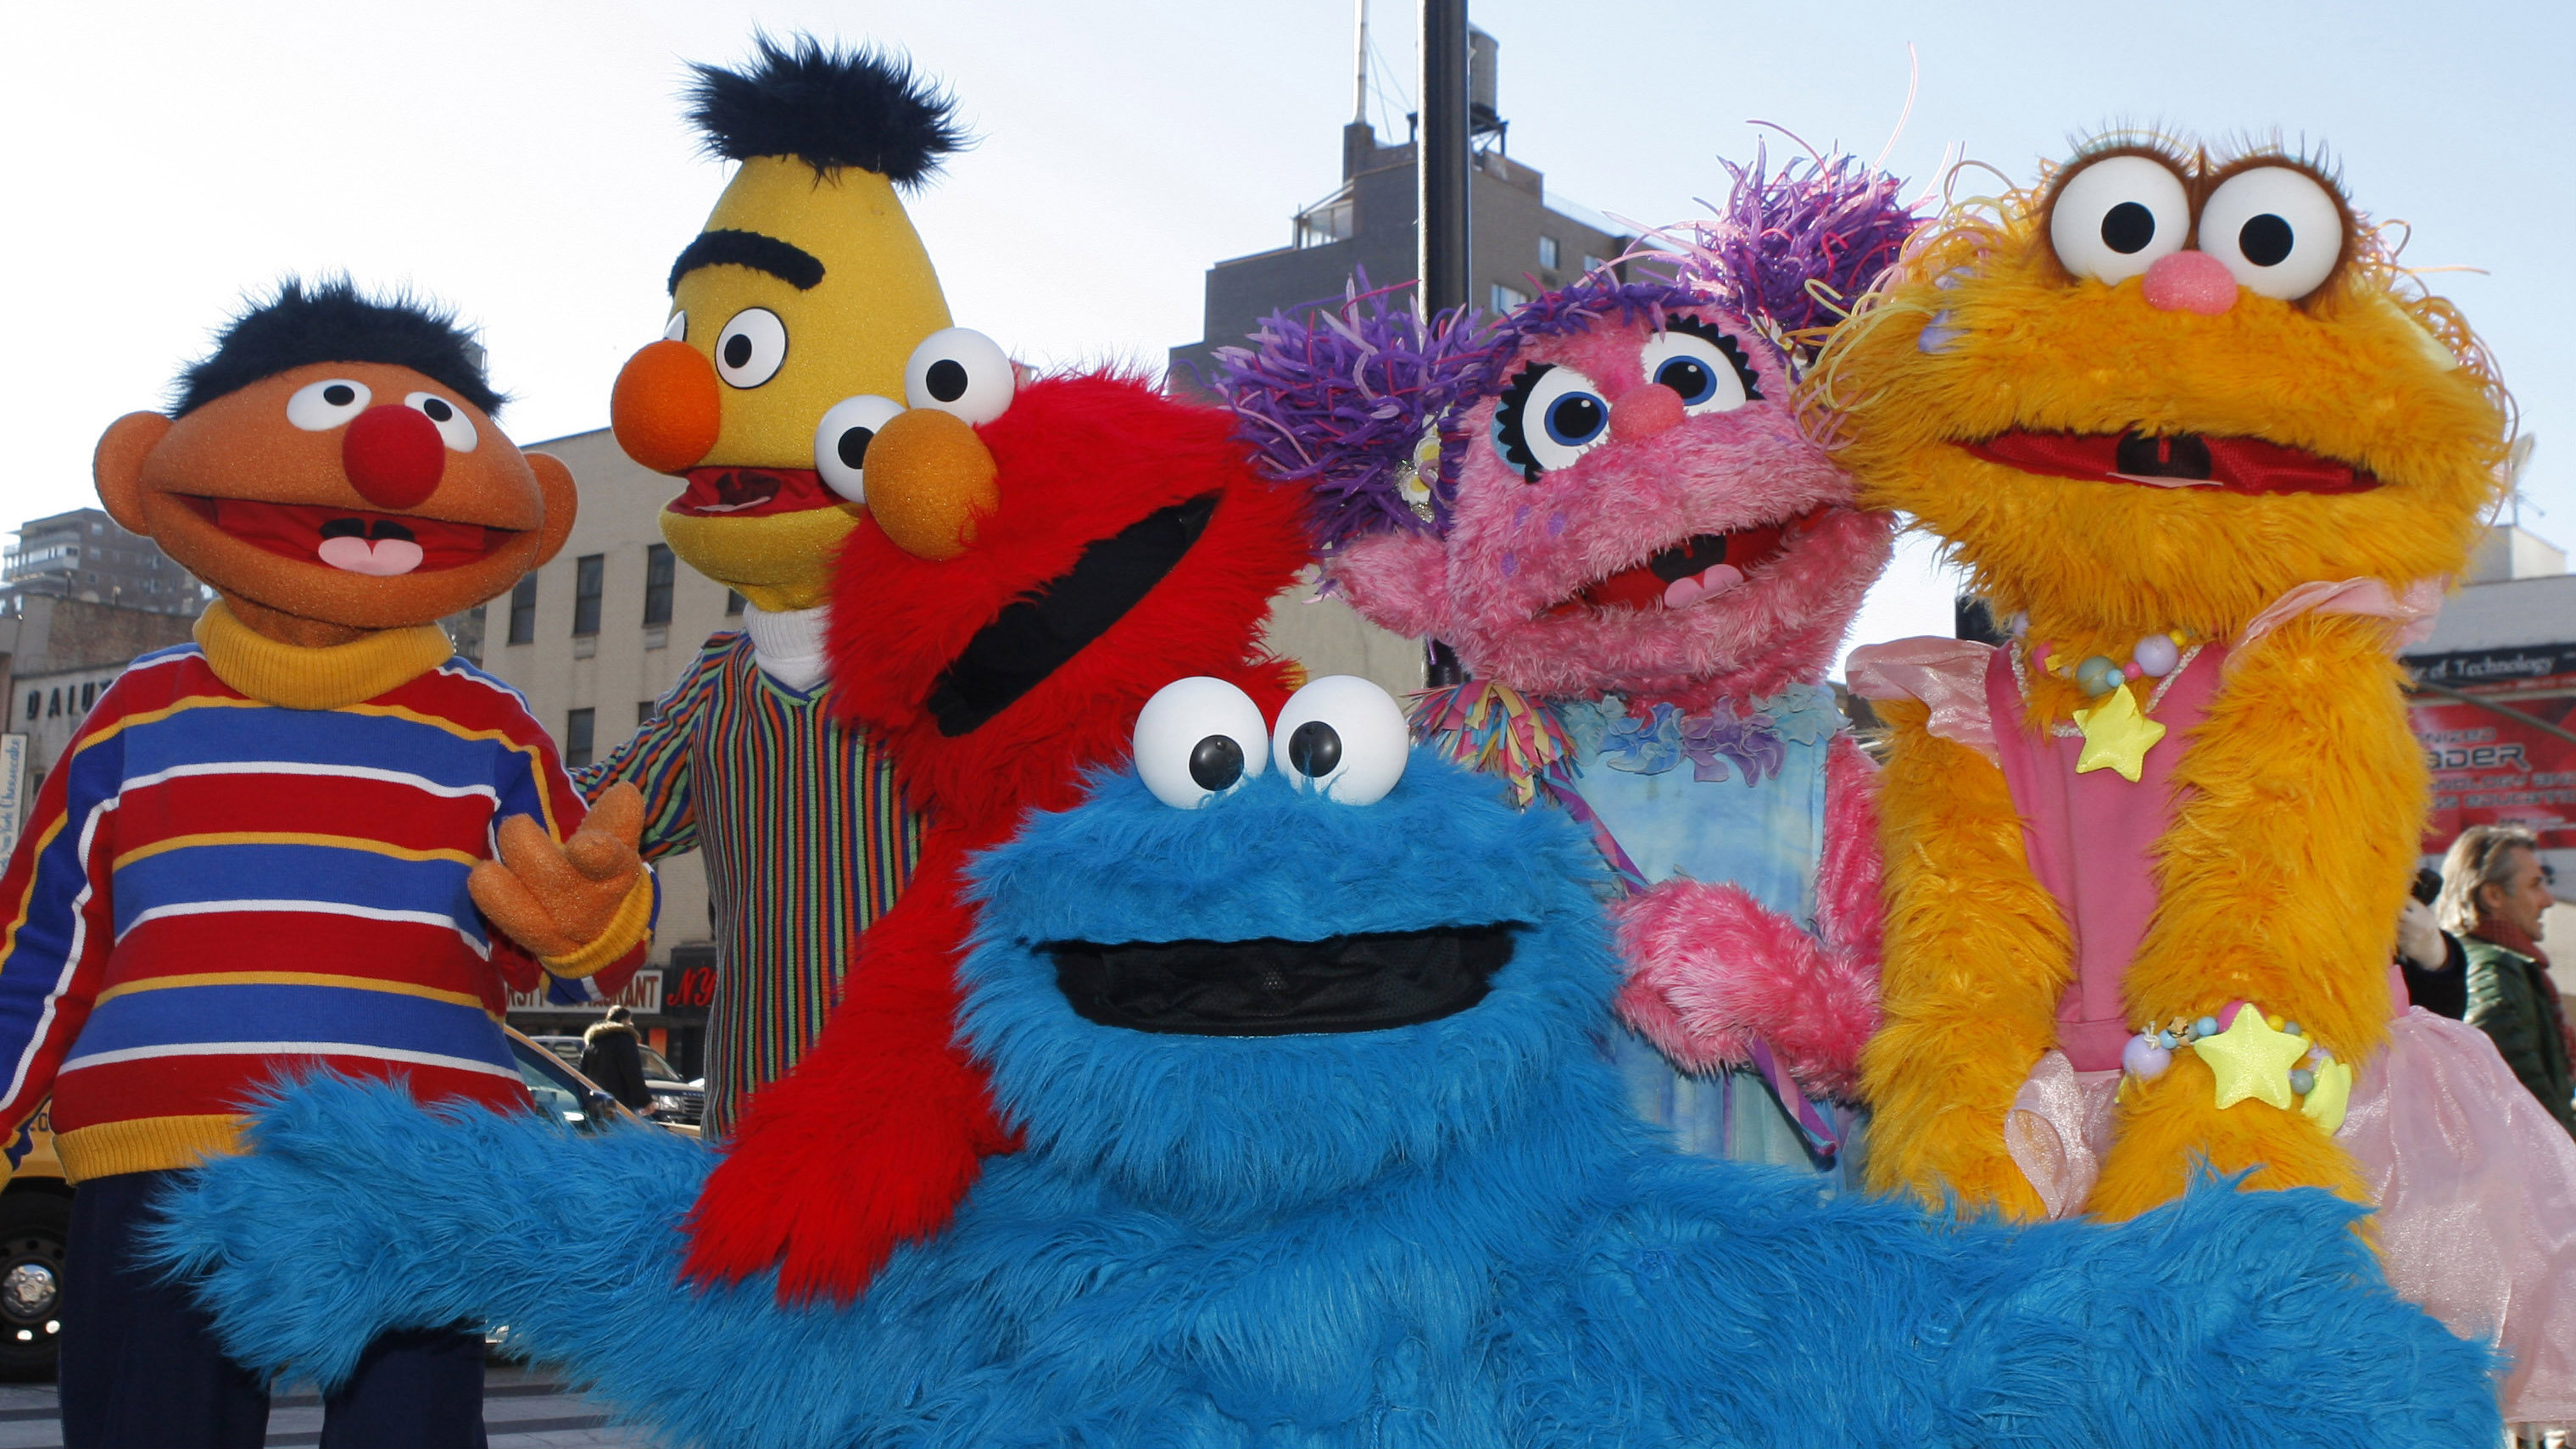 Characters from Sesame Street Live appear on the street by Madison Square Garden to celebrate the 30th anniversary of the live touring stage shows based on the PBS television series in New York, Thursday, Feb. 4, 2010. From left are Ernie, Bert, Elmo, Cookie Monster (foreground), Abby Cadabby, and Zoe.